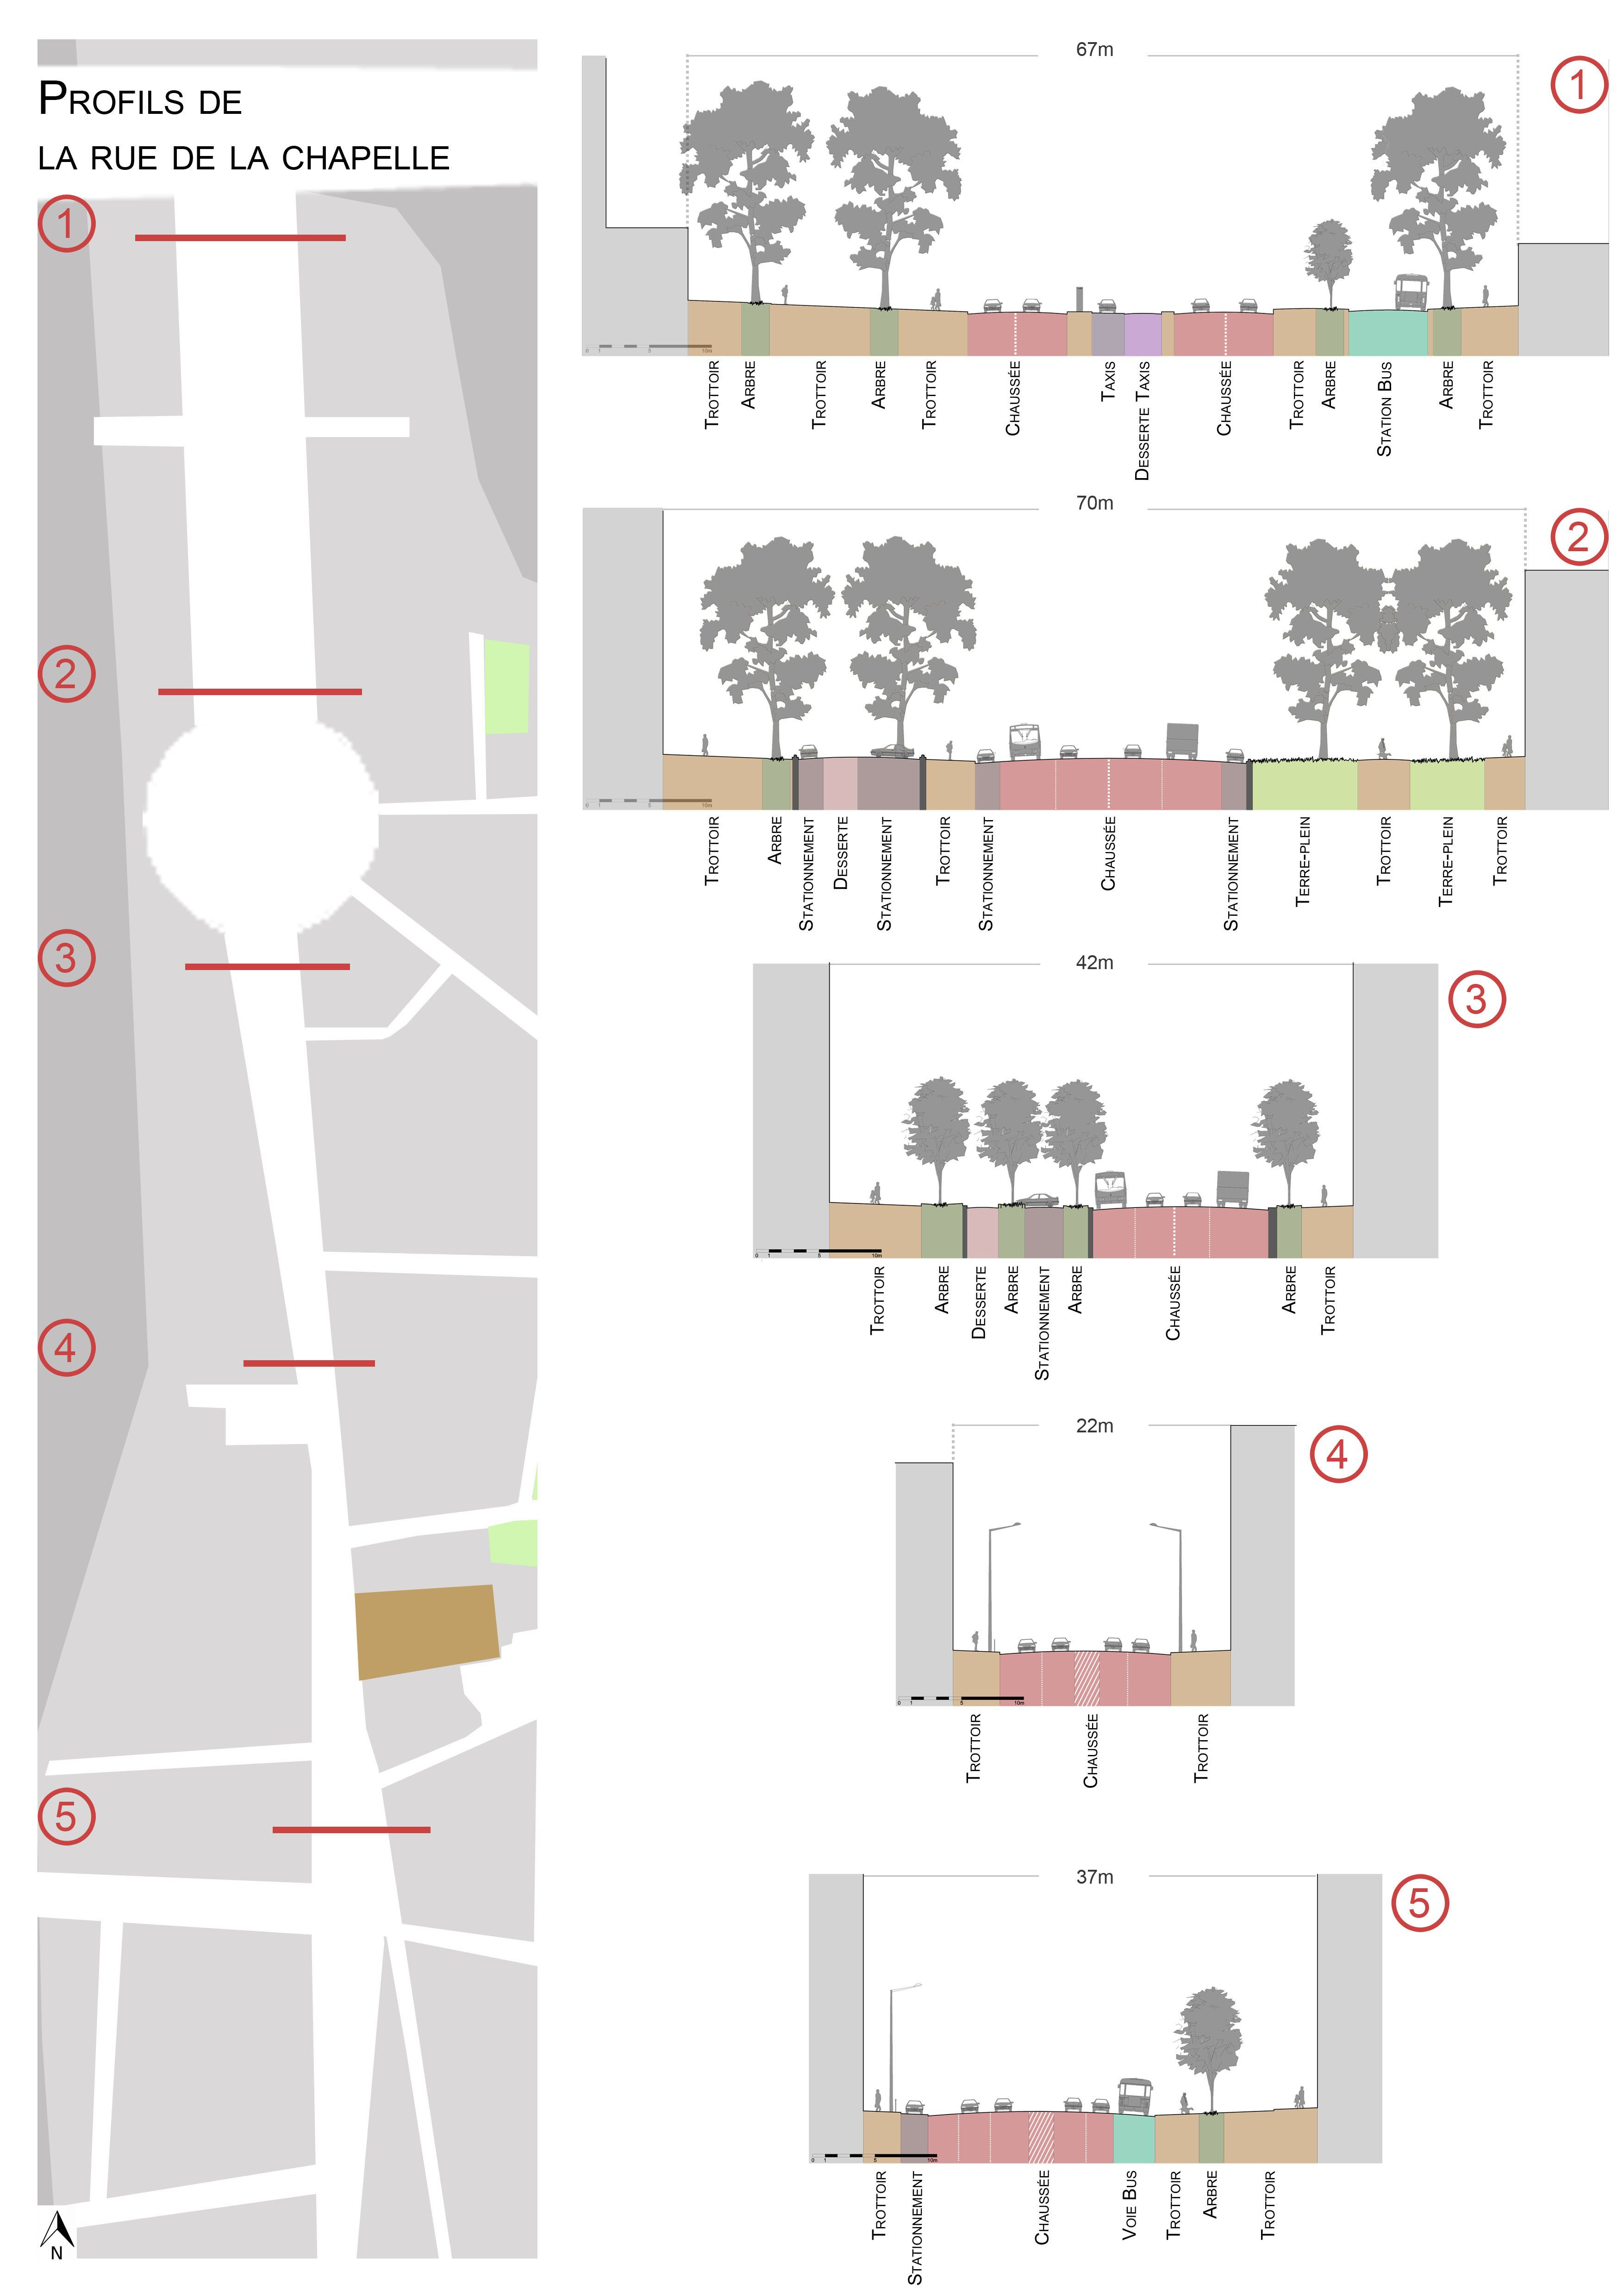 Street Furniture Design Guidelines street section 1 | diagramas y conceptuales | pinterest | street